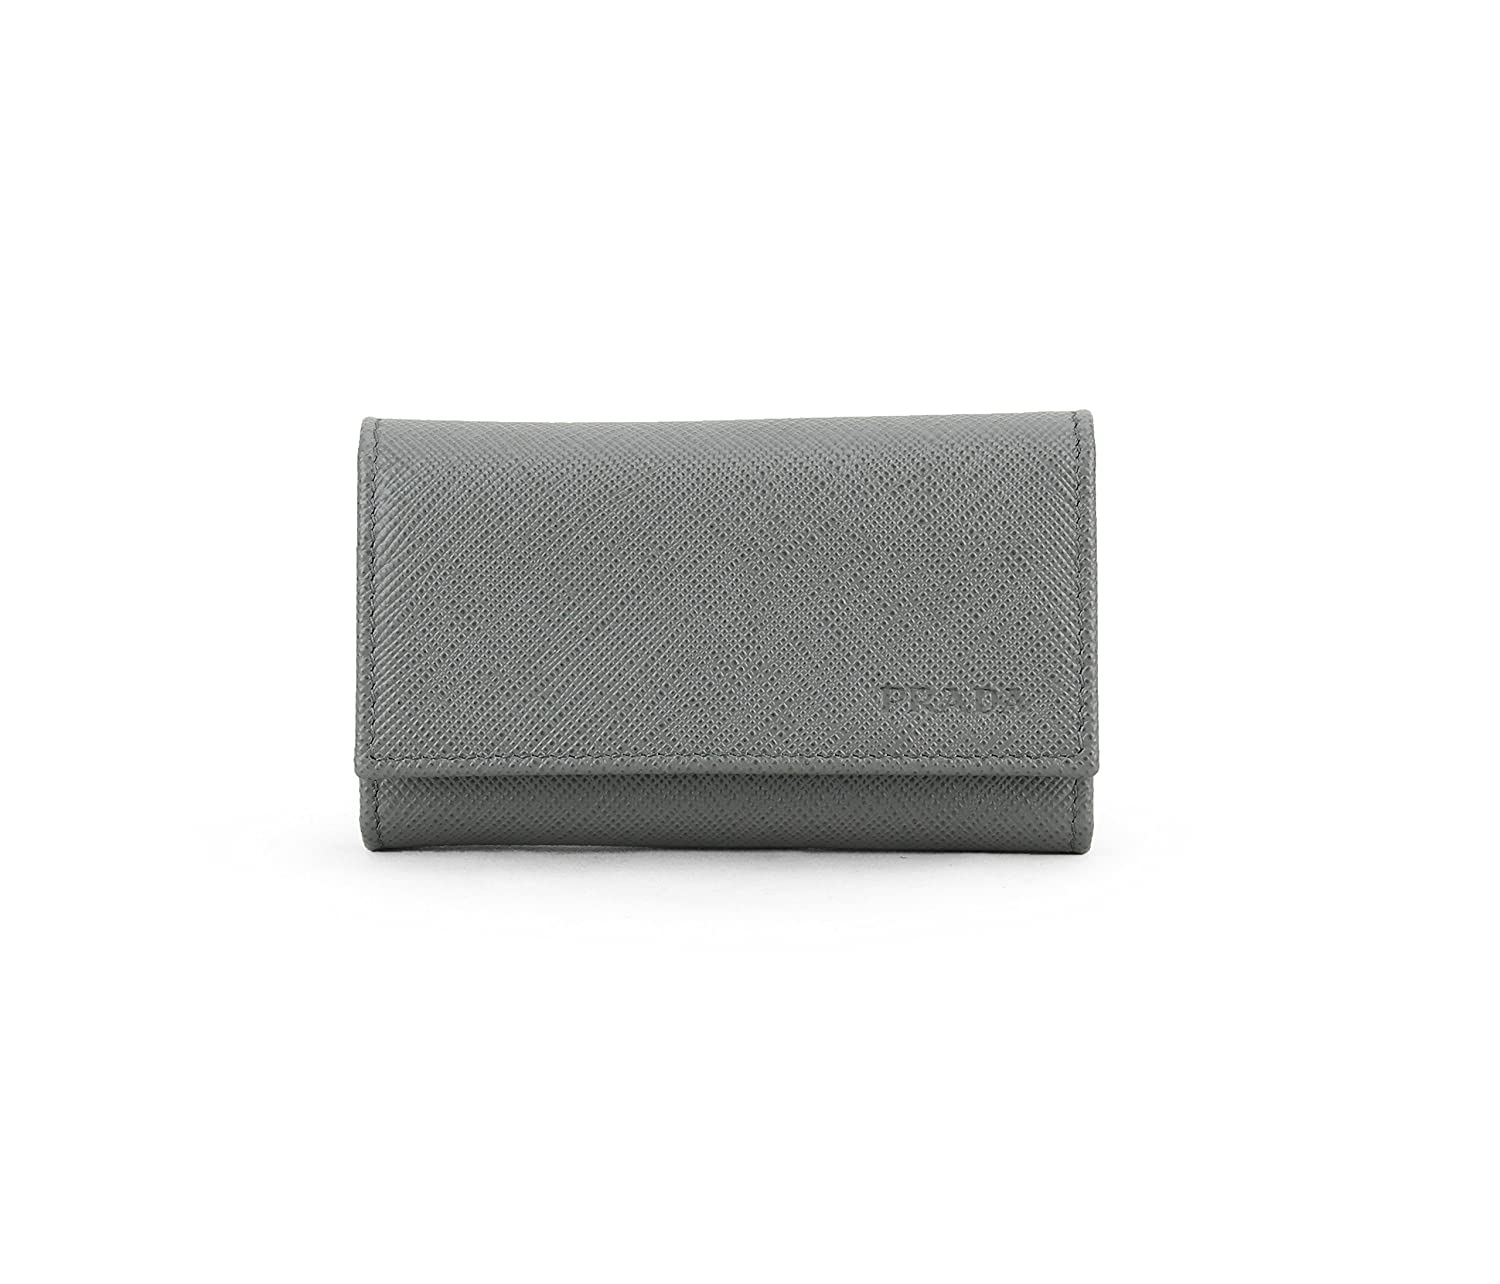 f2d84f930fad Prada Saffiano Leather Key Holder Wallet, Mercurio (Grey) at Amazon Women's  Clothing store: